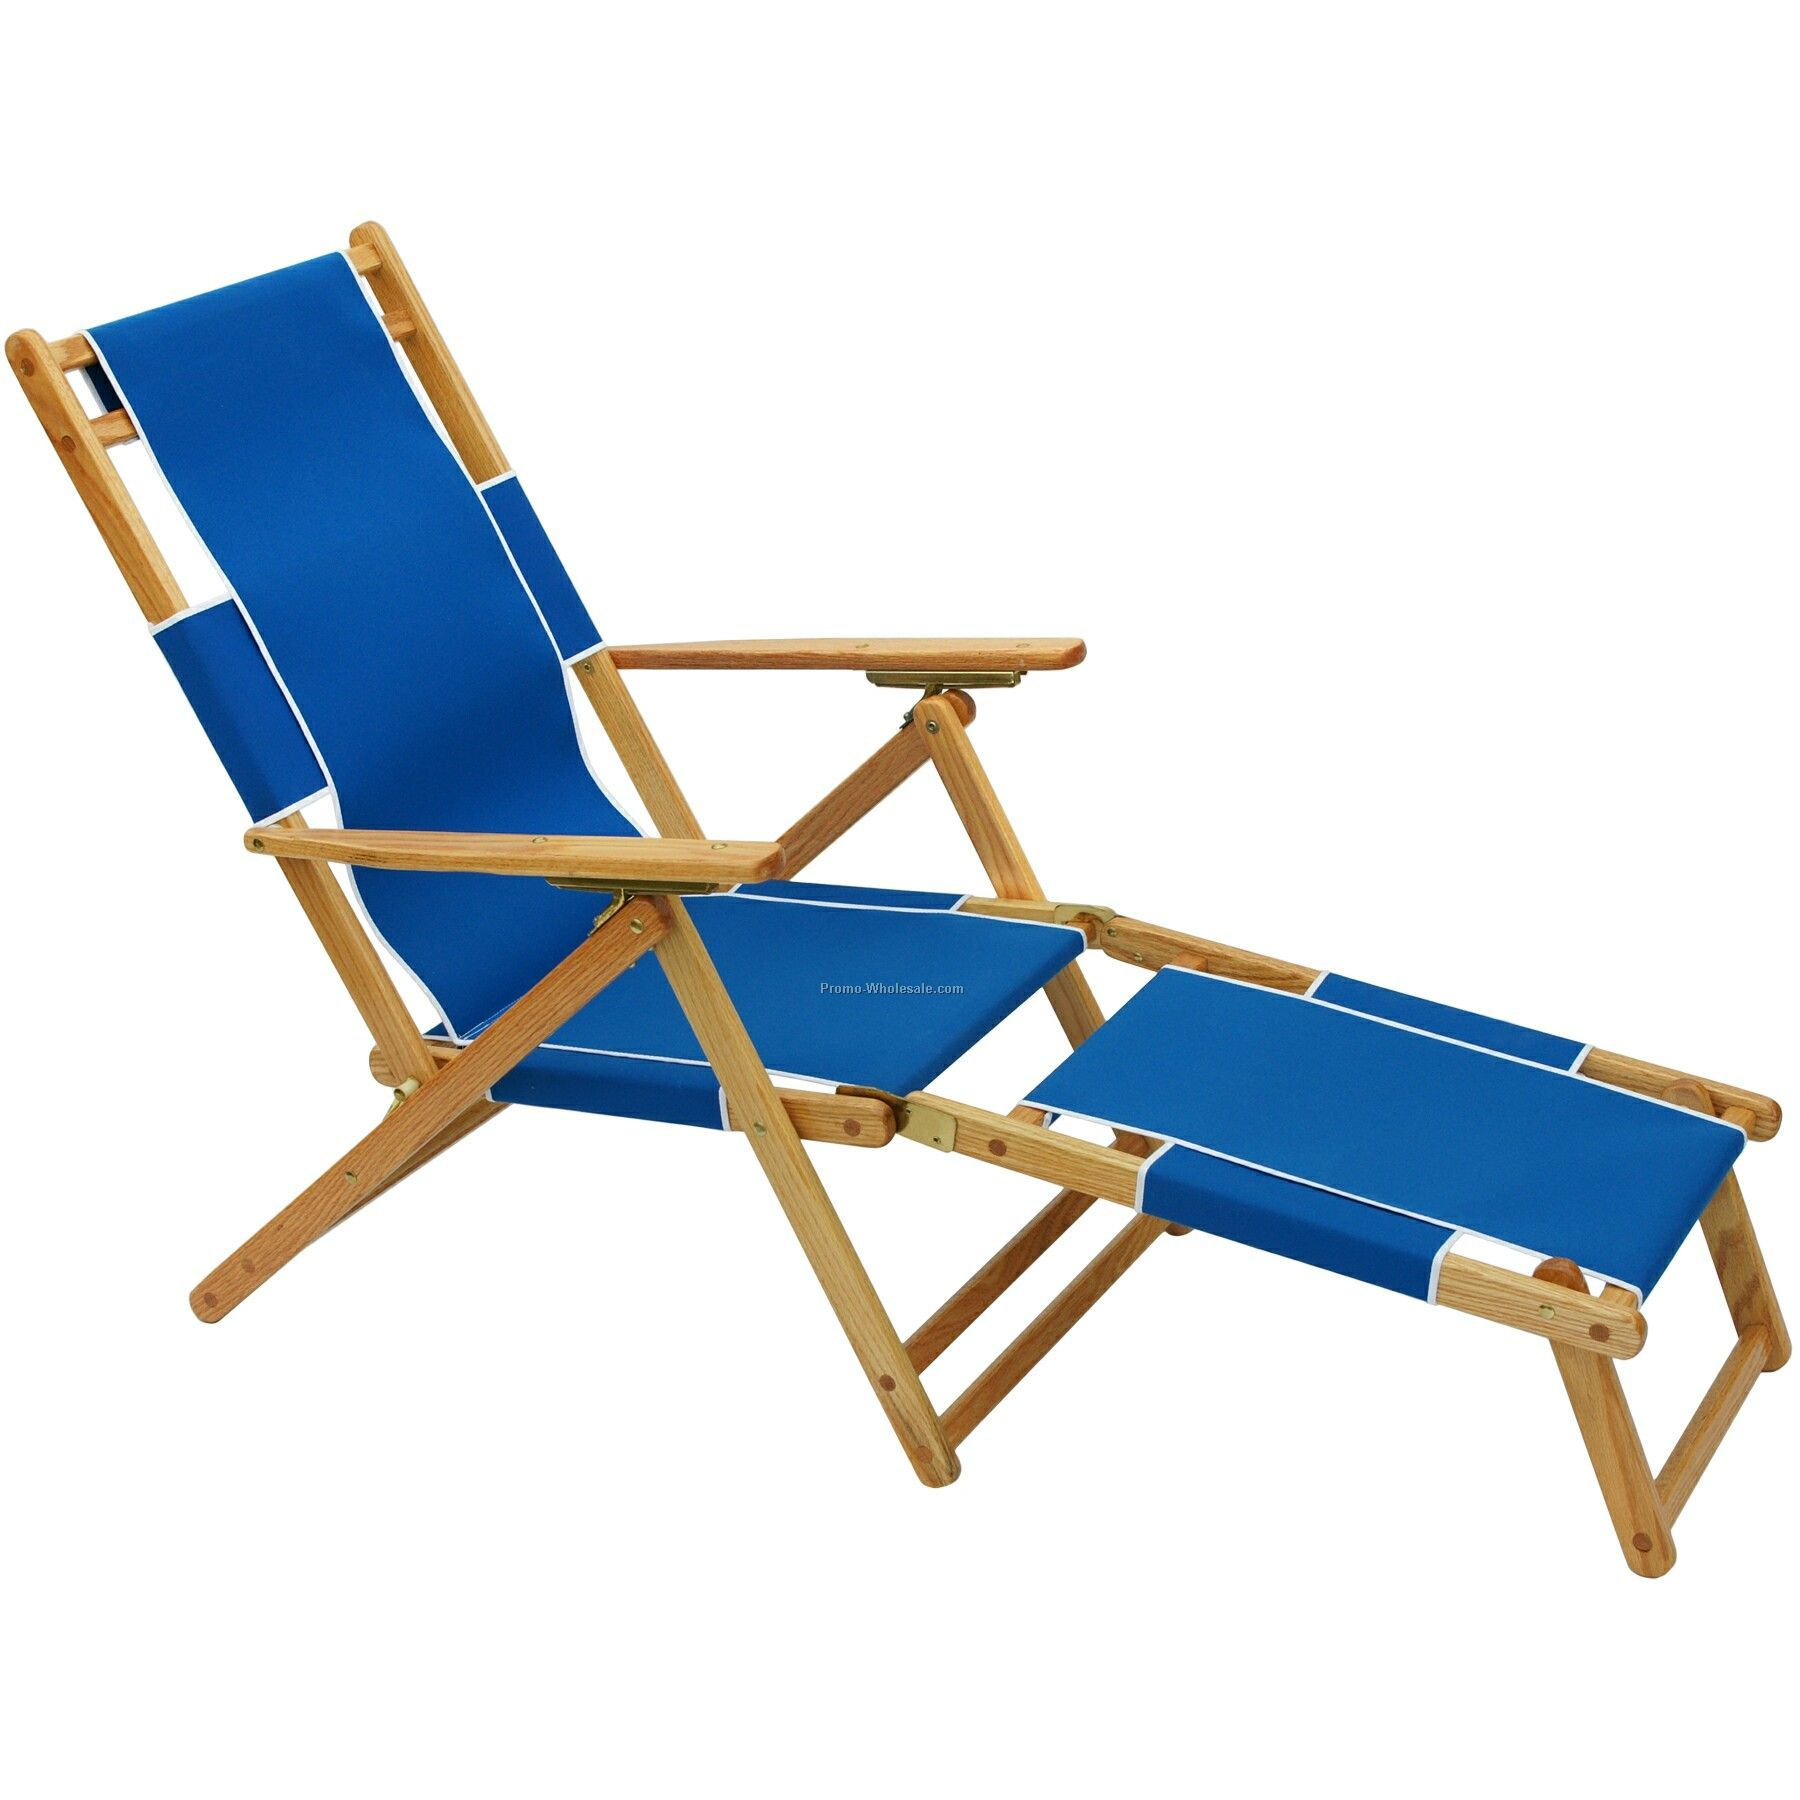 Us Made Deluxe Solid Oak Hardwood Frame Folding Beach Lounger